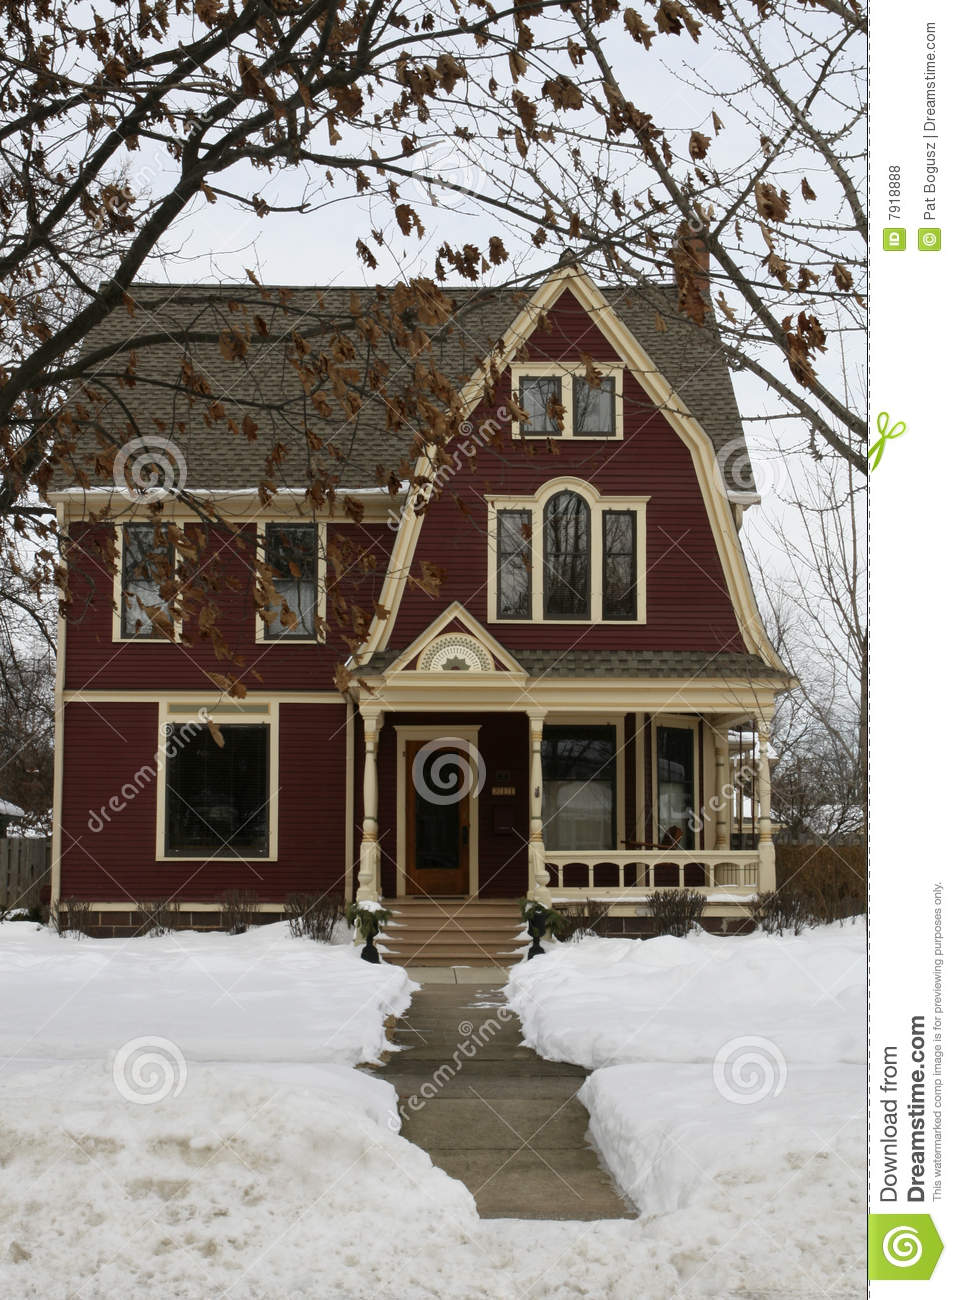 American Home in Winter